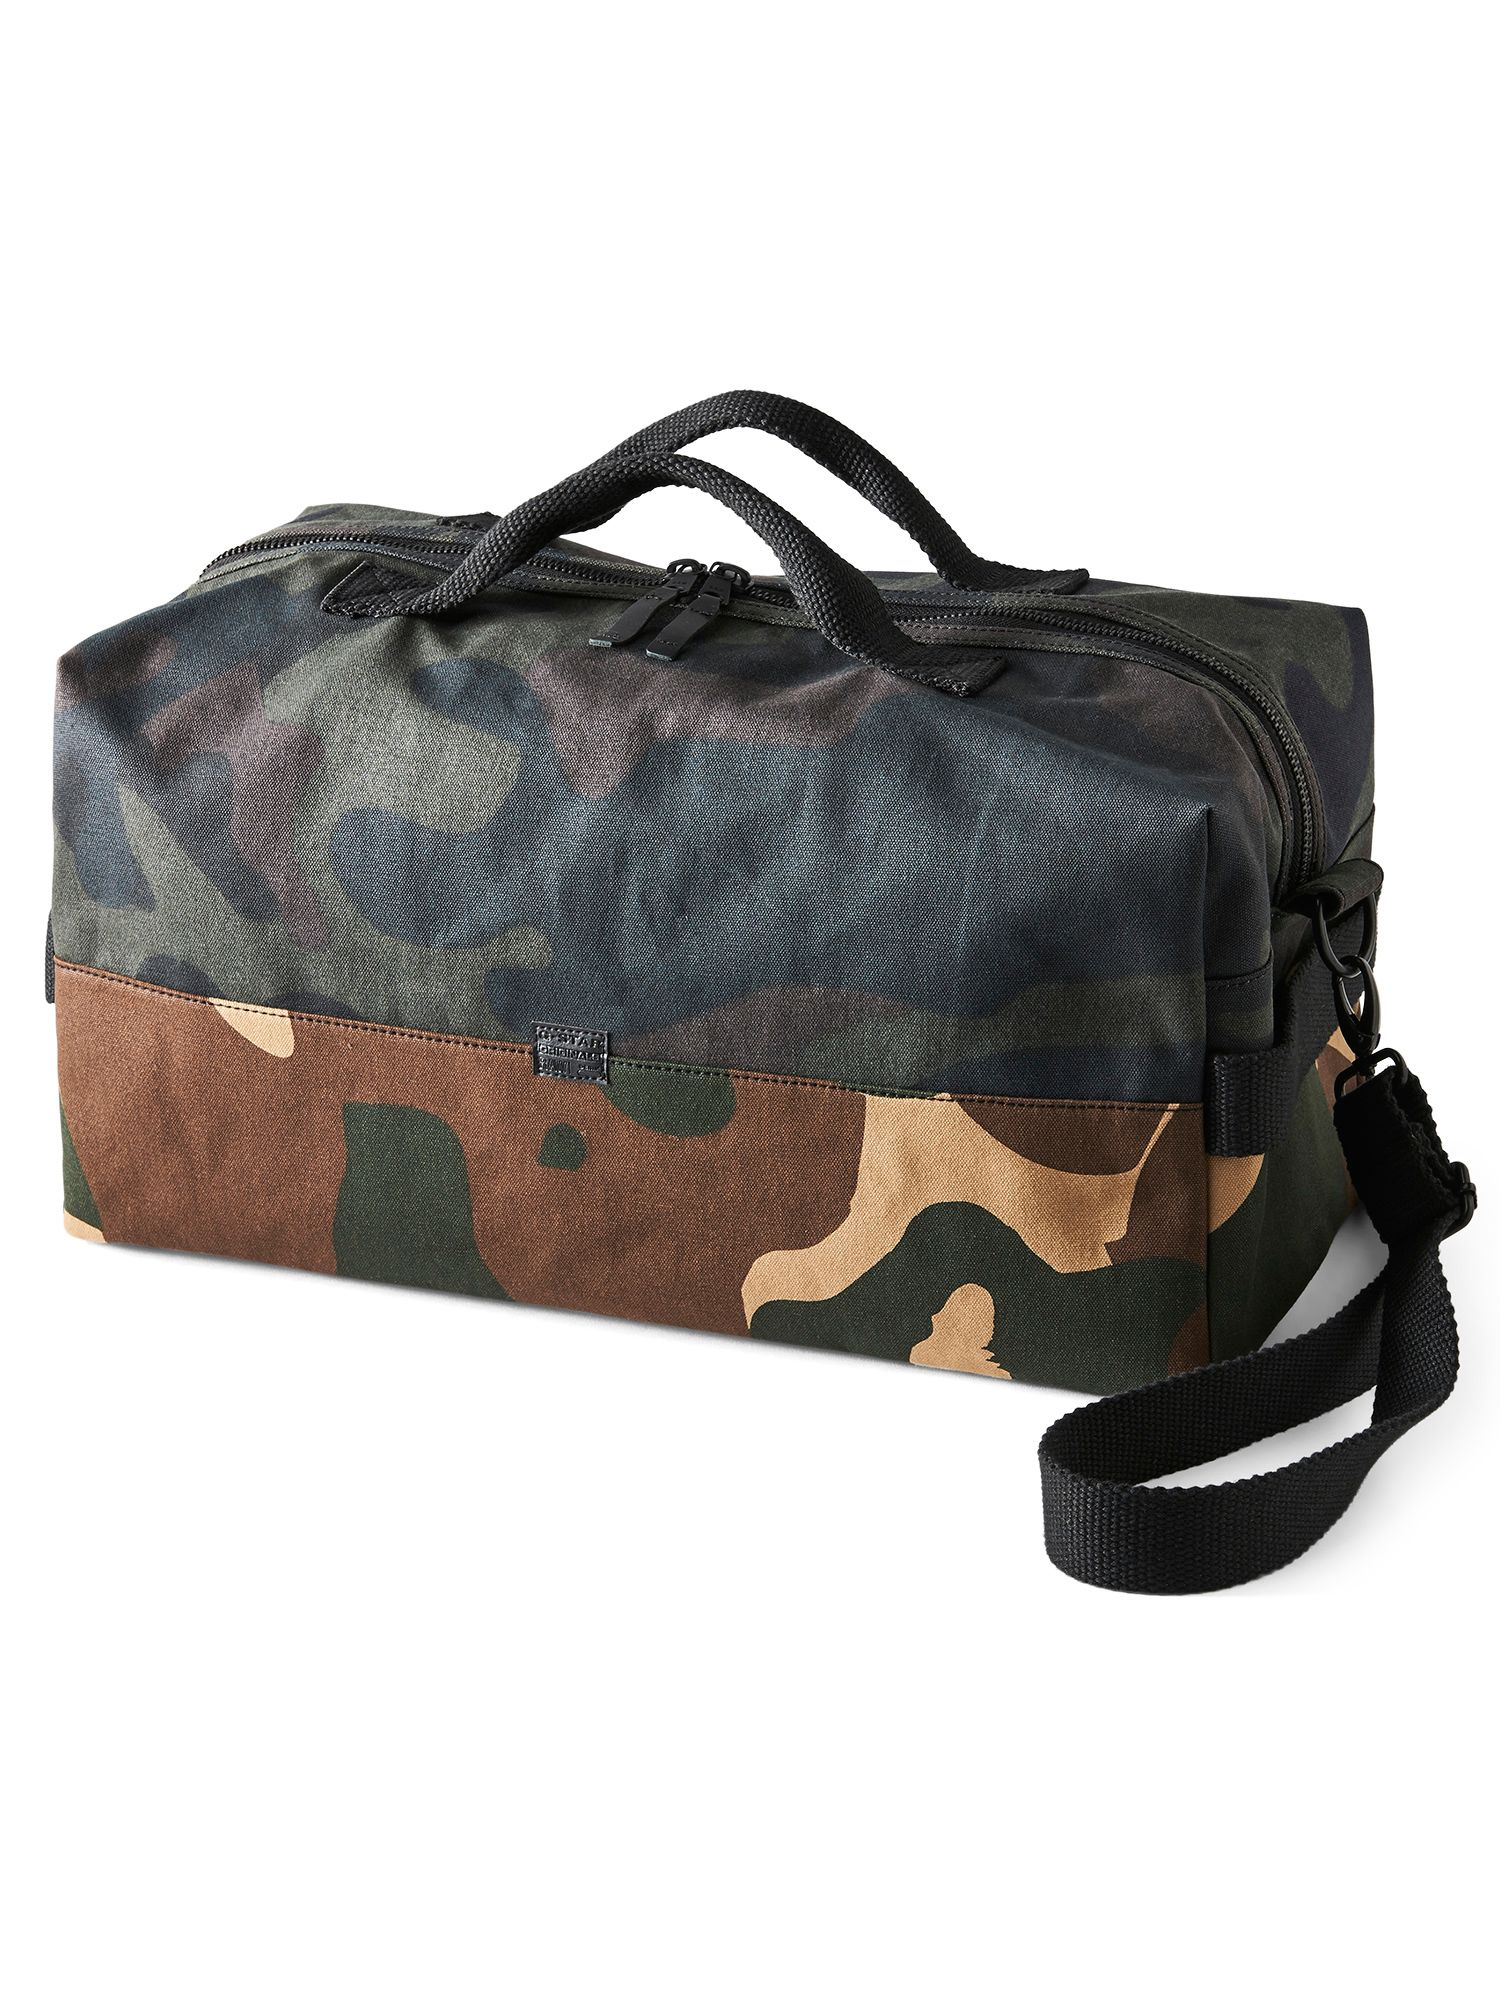 G-Star Barran Pattern Big Duffle Bag, Green